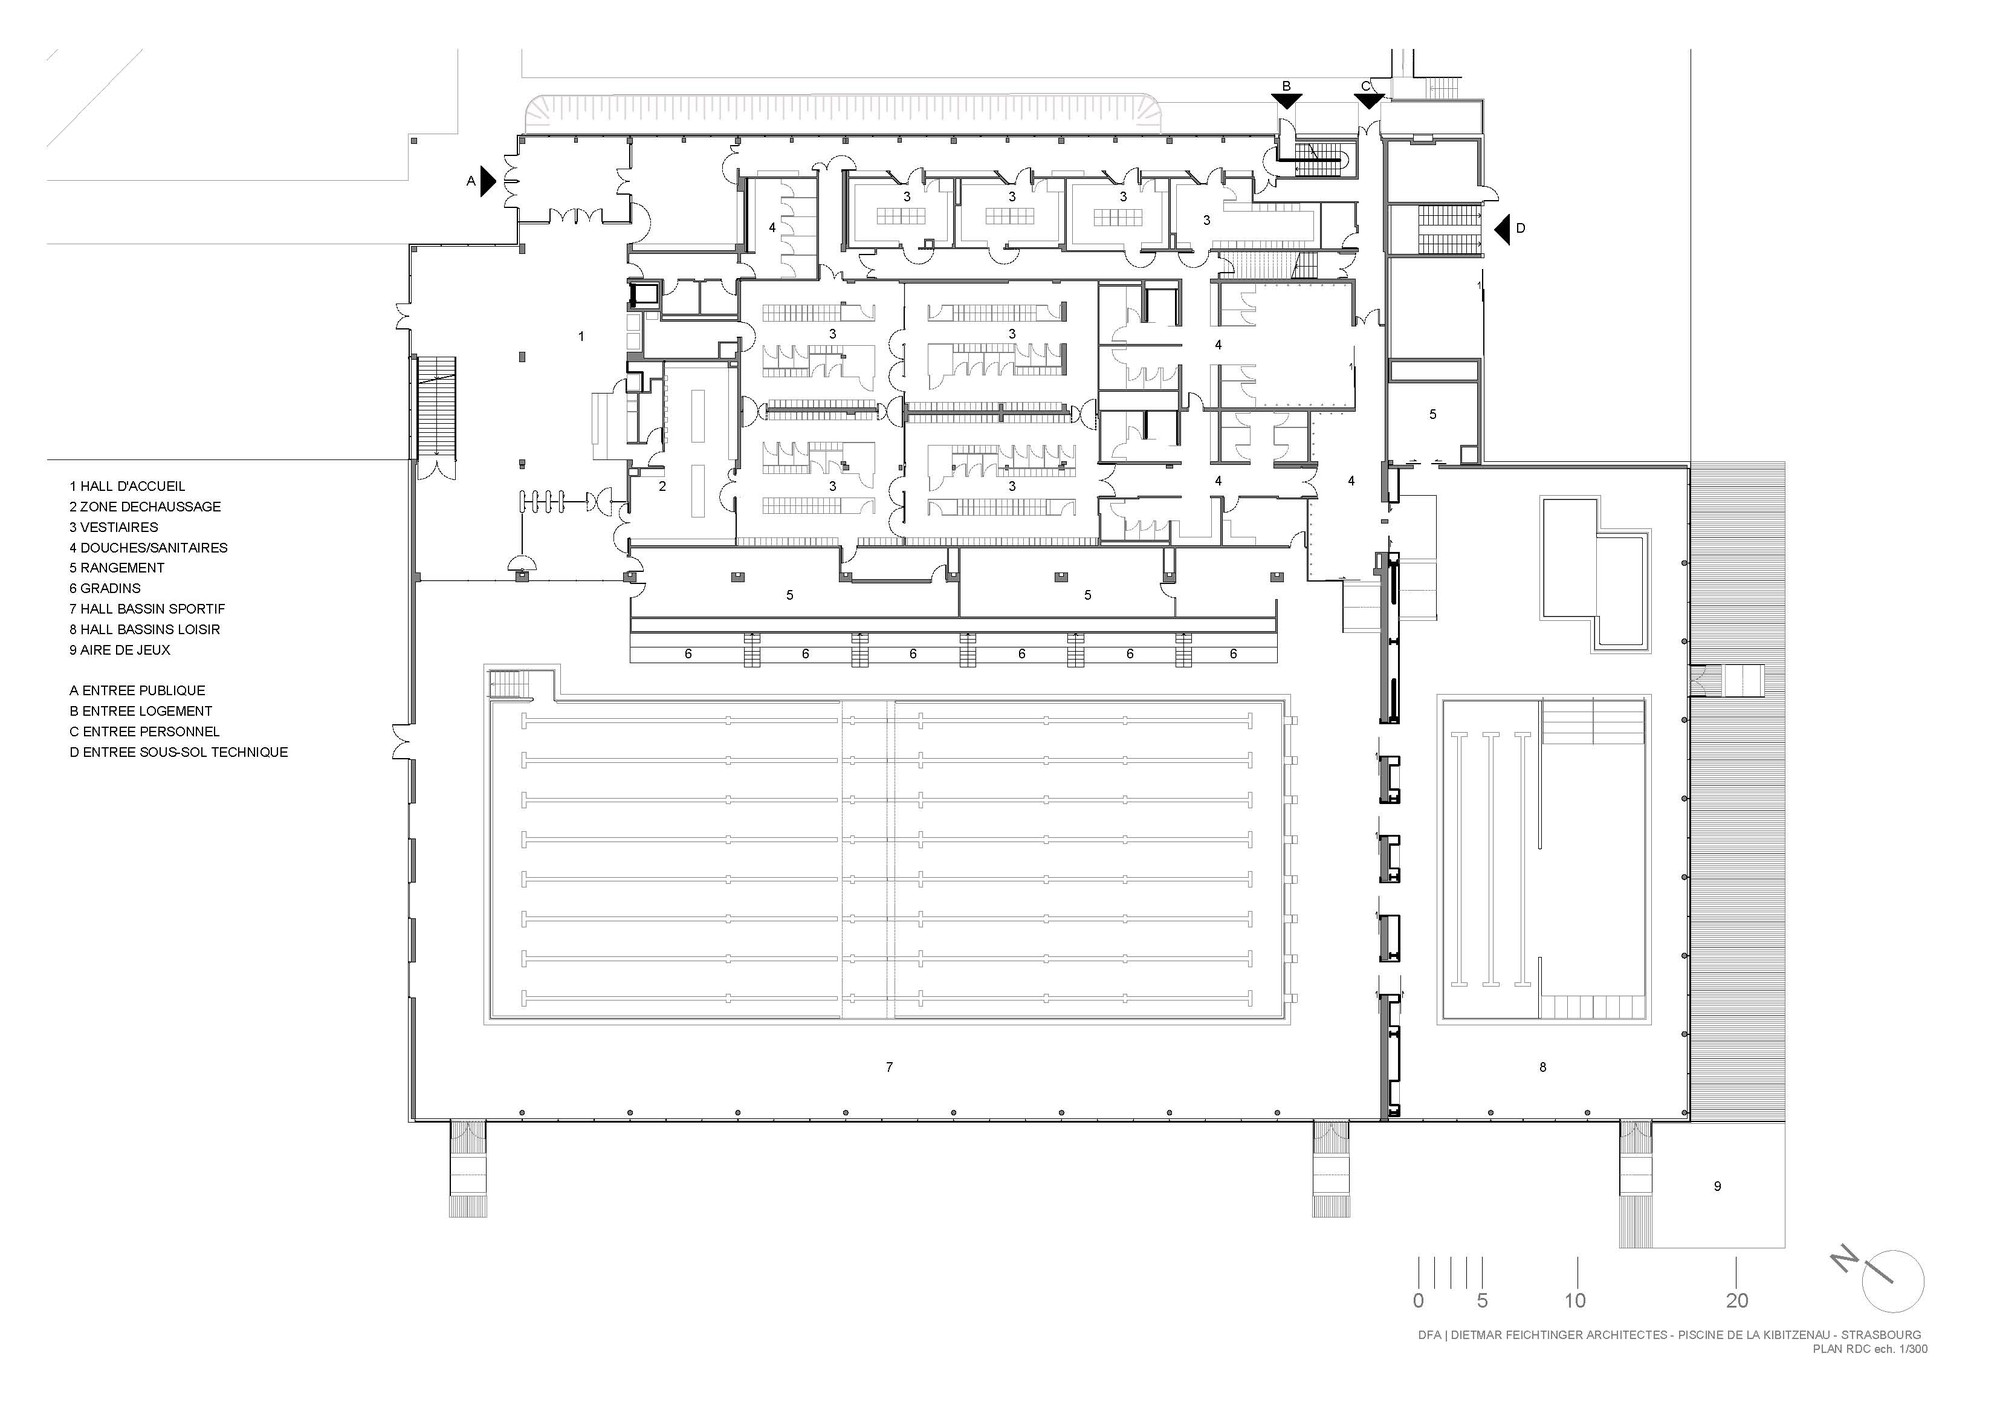 modren olympic swimming pool diagram ground floor plan on design ideas